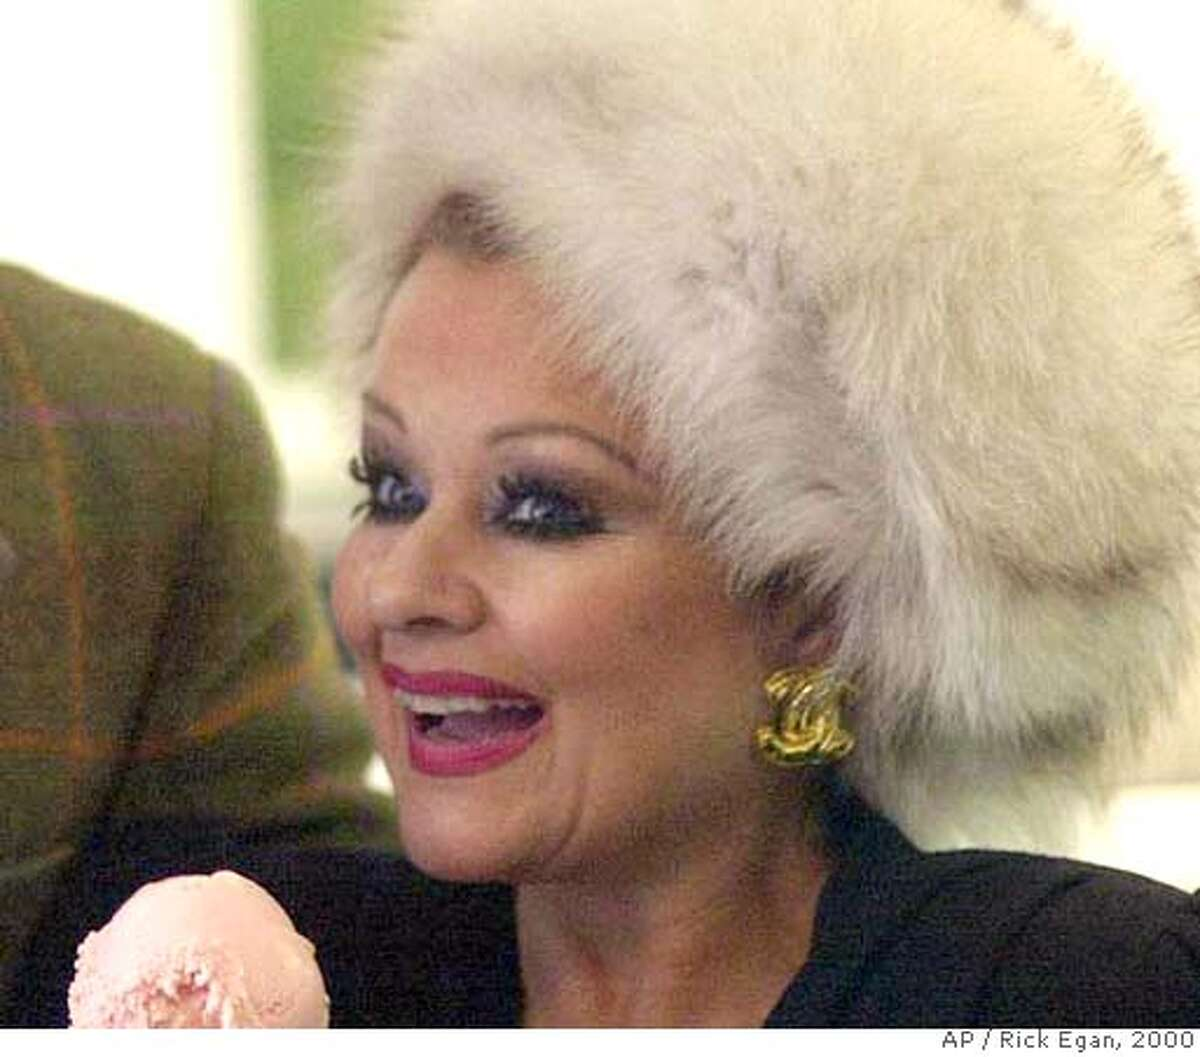 Tammy Faye Messner Longtime Televangelism Icon